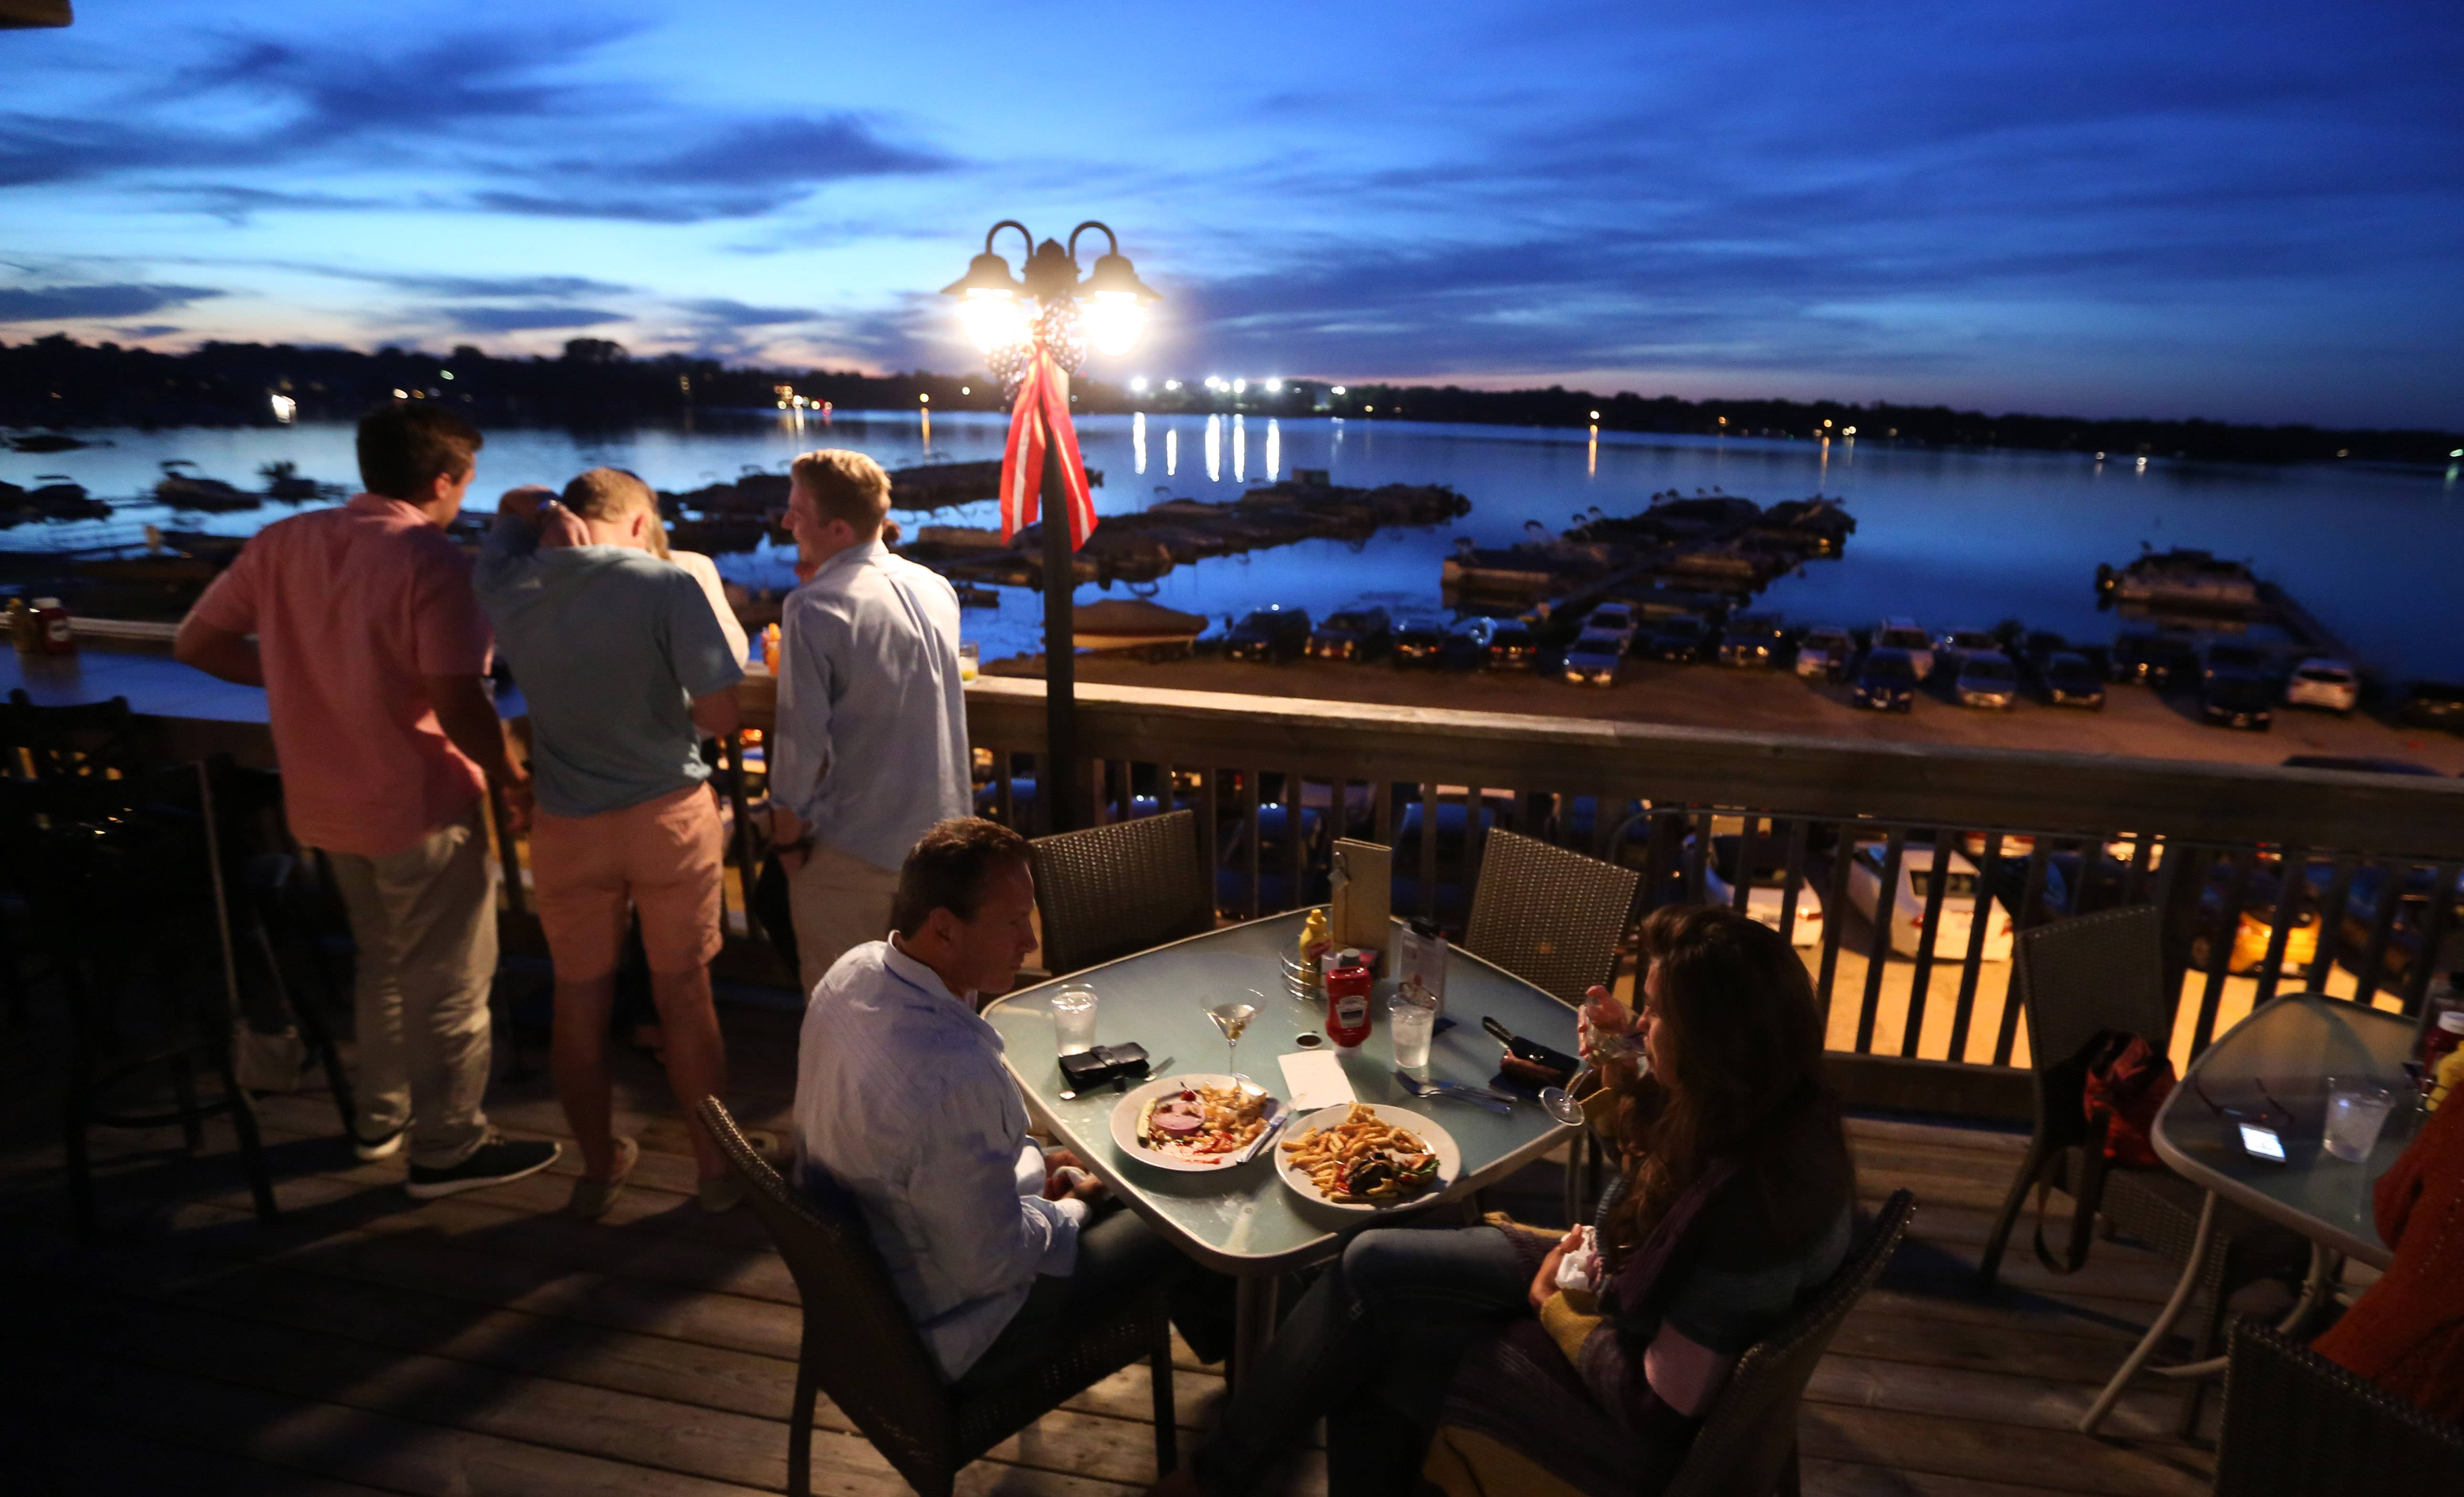 The outdoor dining and bar area at Docks Bar and Grill overlooks Bangs Lake in Wauconda.